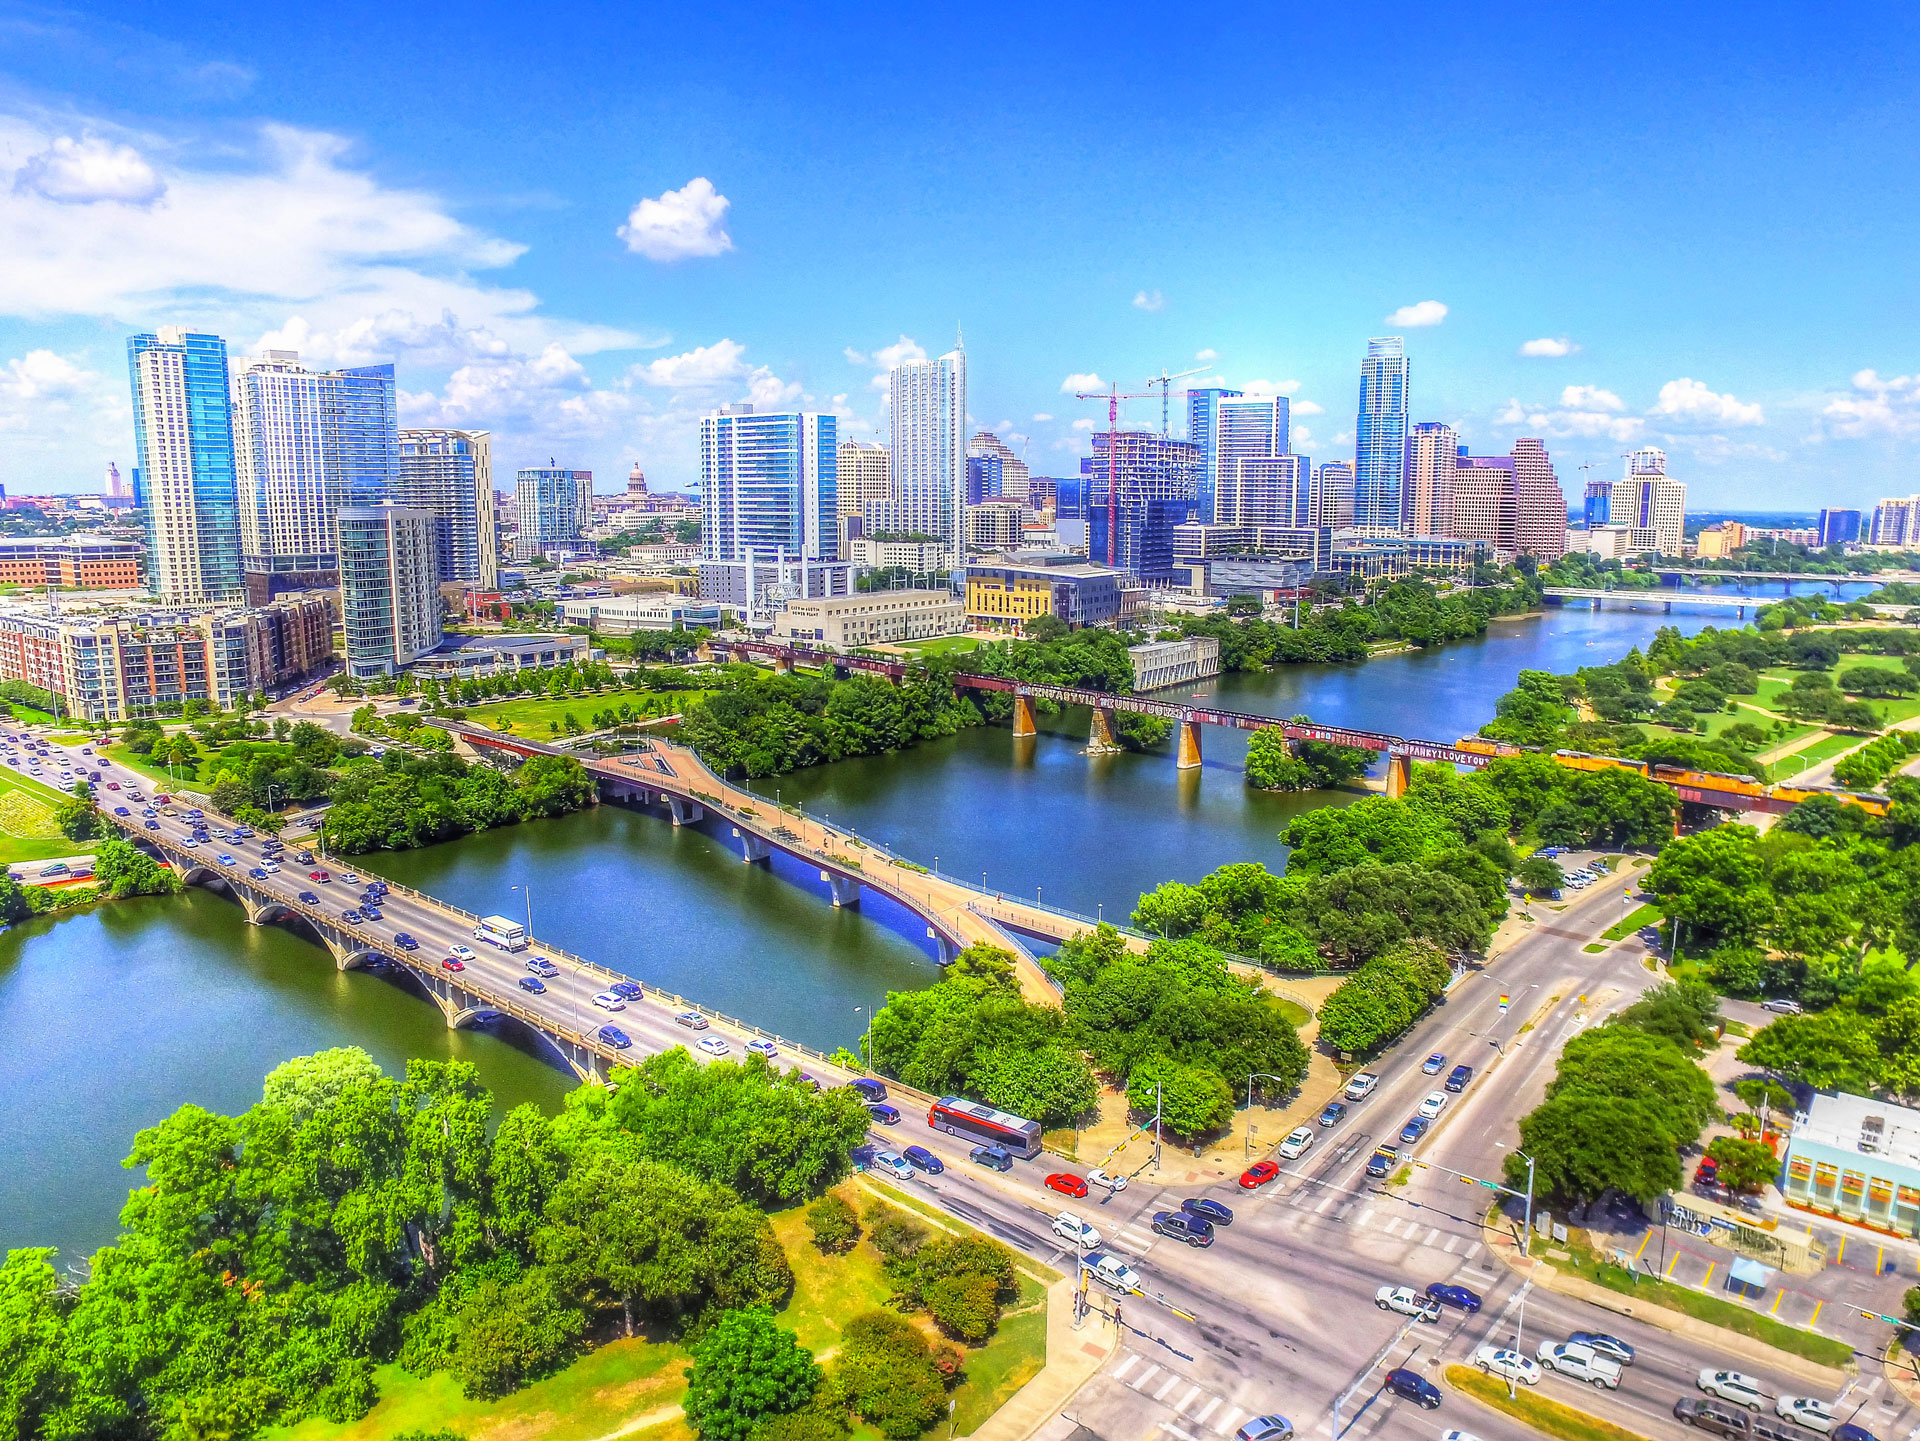 AUSTIN'S BUILT ON SMALL BUSINESSES